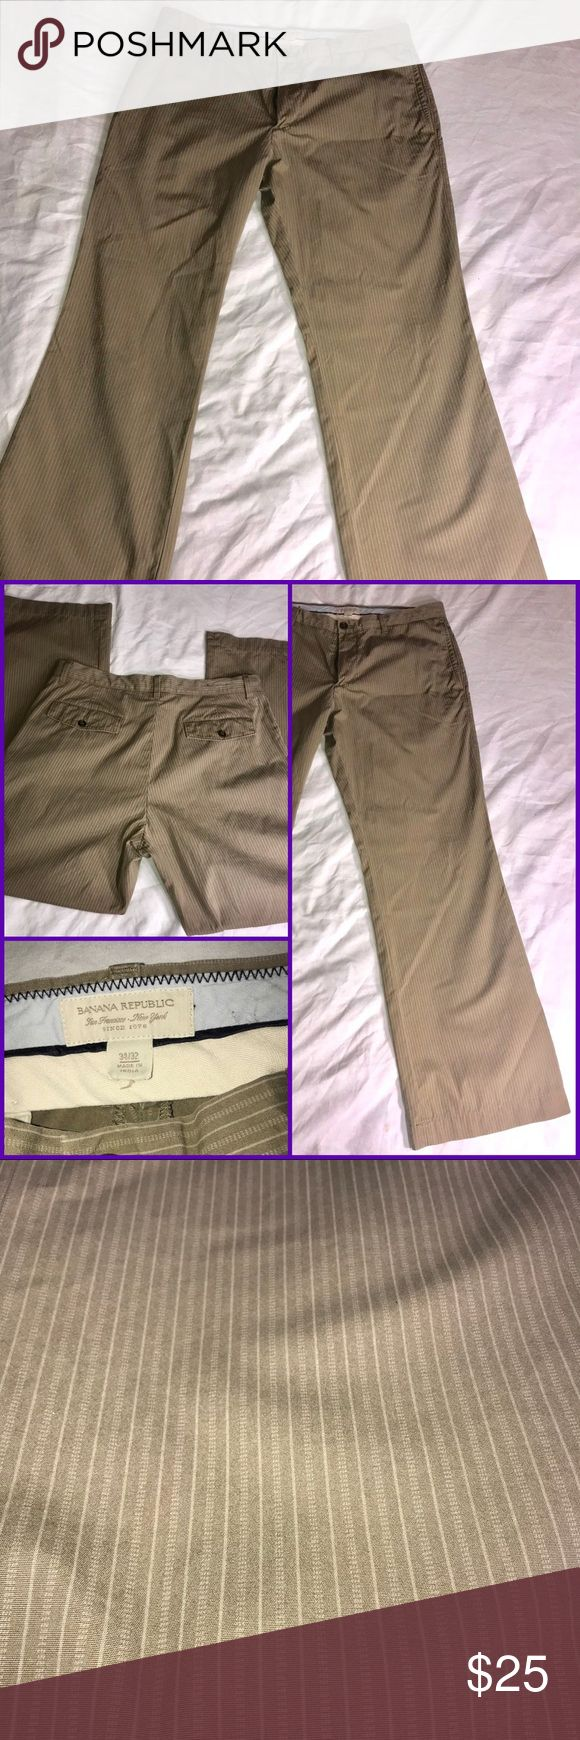 Banana Republic Mens 34x32 Pants Khaki Slacks 100% Cotton Light Brown Striped Career Pants   Please see pictures for measurements and details.   Fast shipping! Banana Republic Pants Chinos & Khakis